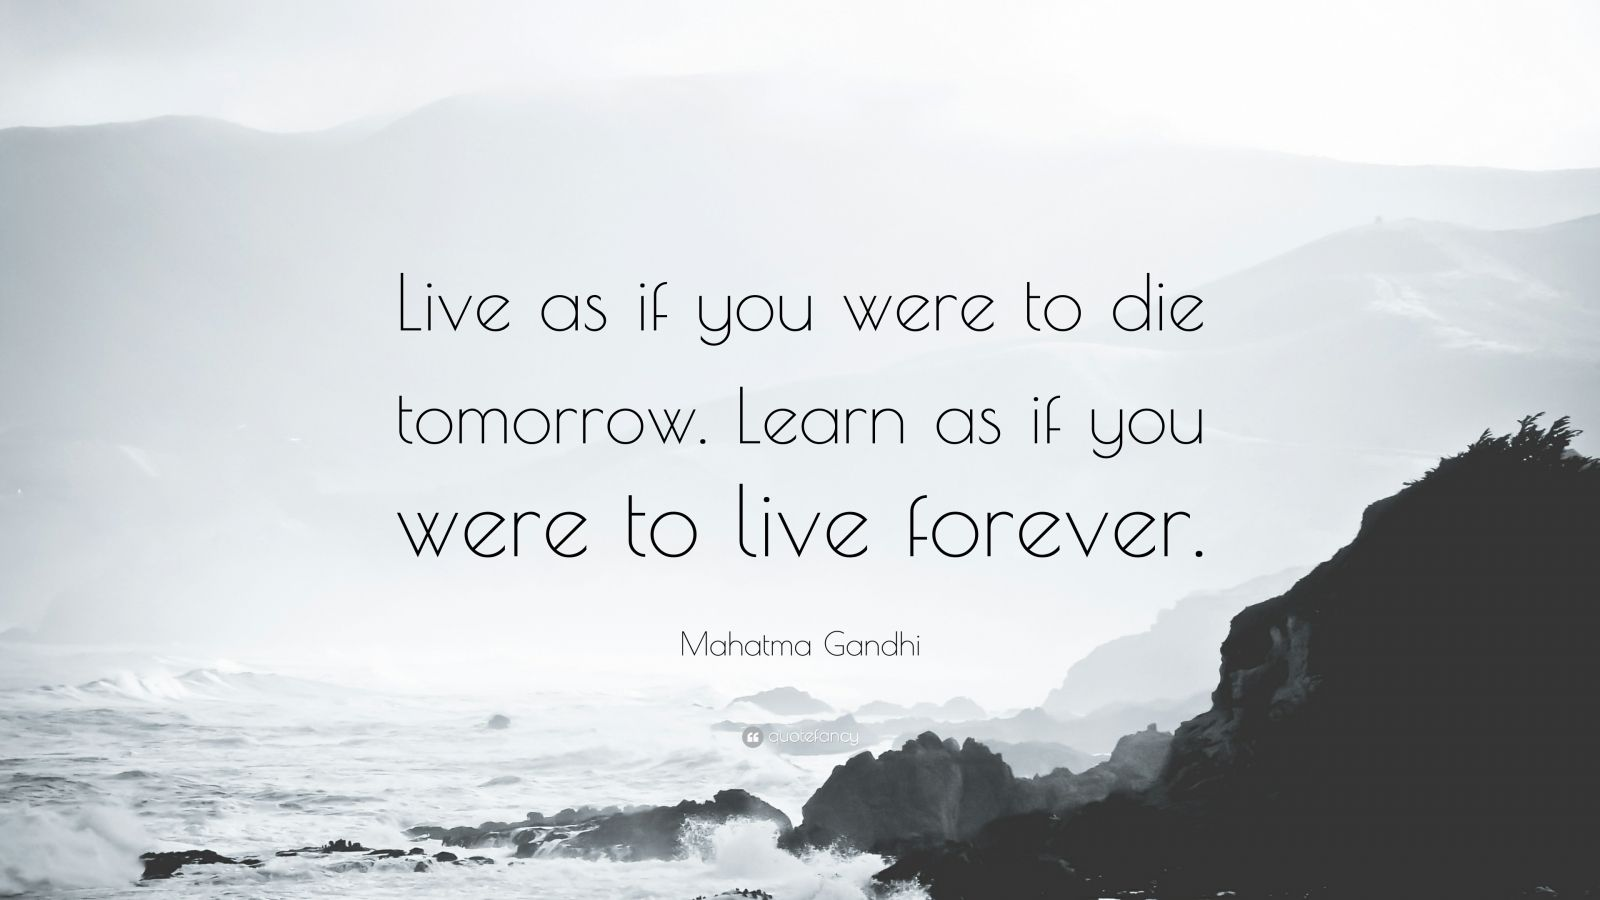 Push Yourself Quotes Wallpaper Mahatma Gandhi Quote Live As If You Were To Die Tomorrow